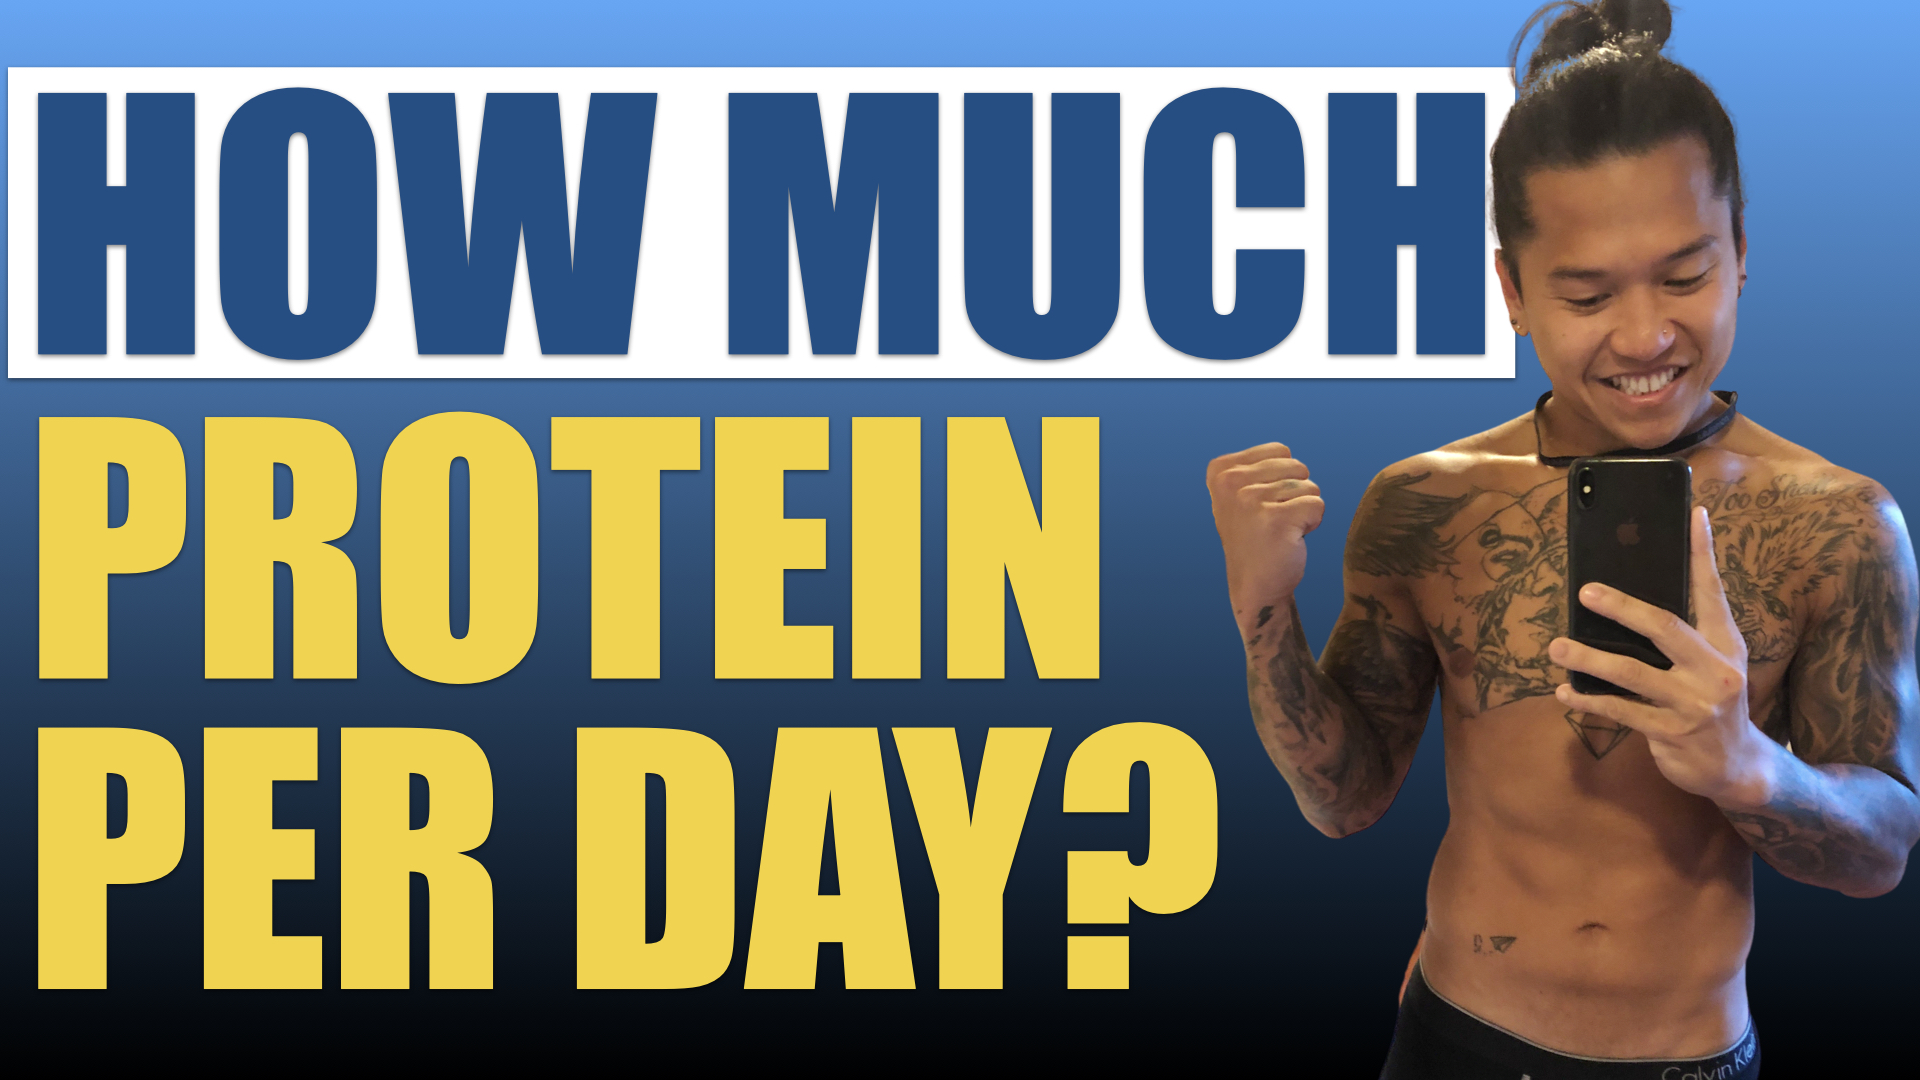 HOW MUCH PROTEIN DO YOU NEED A DAY